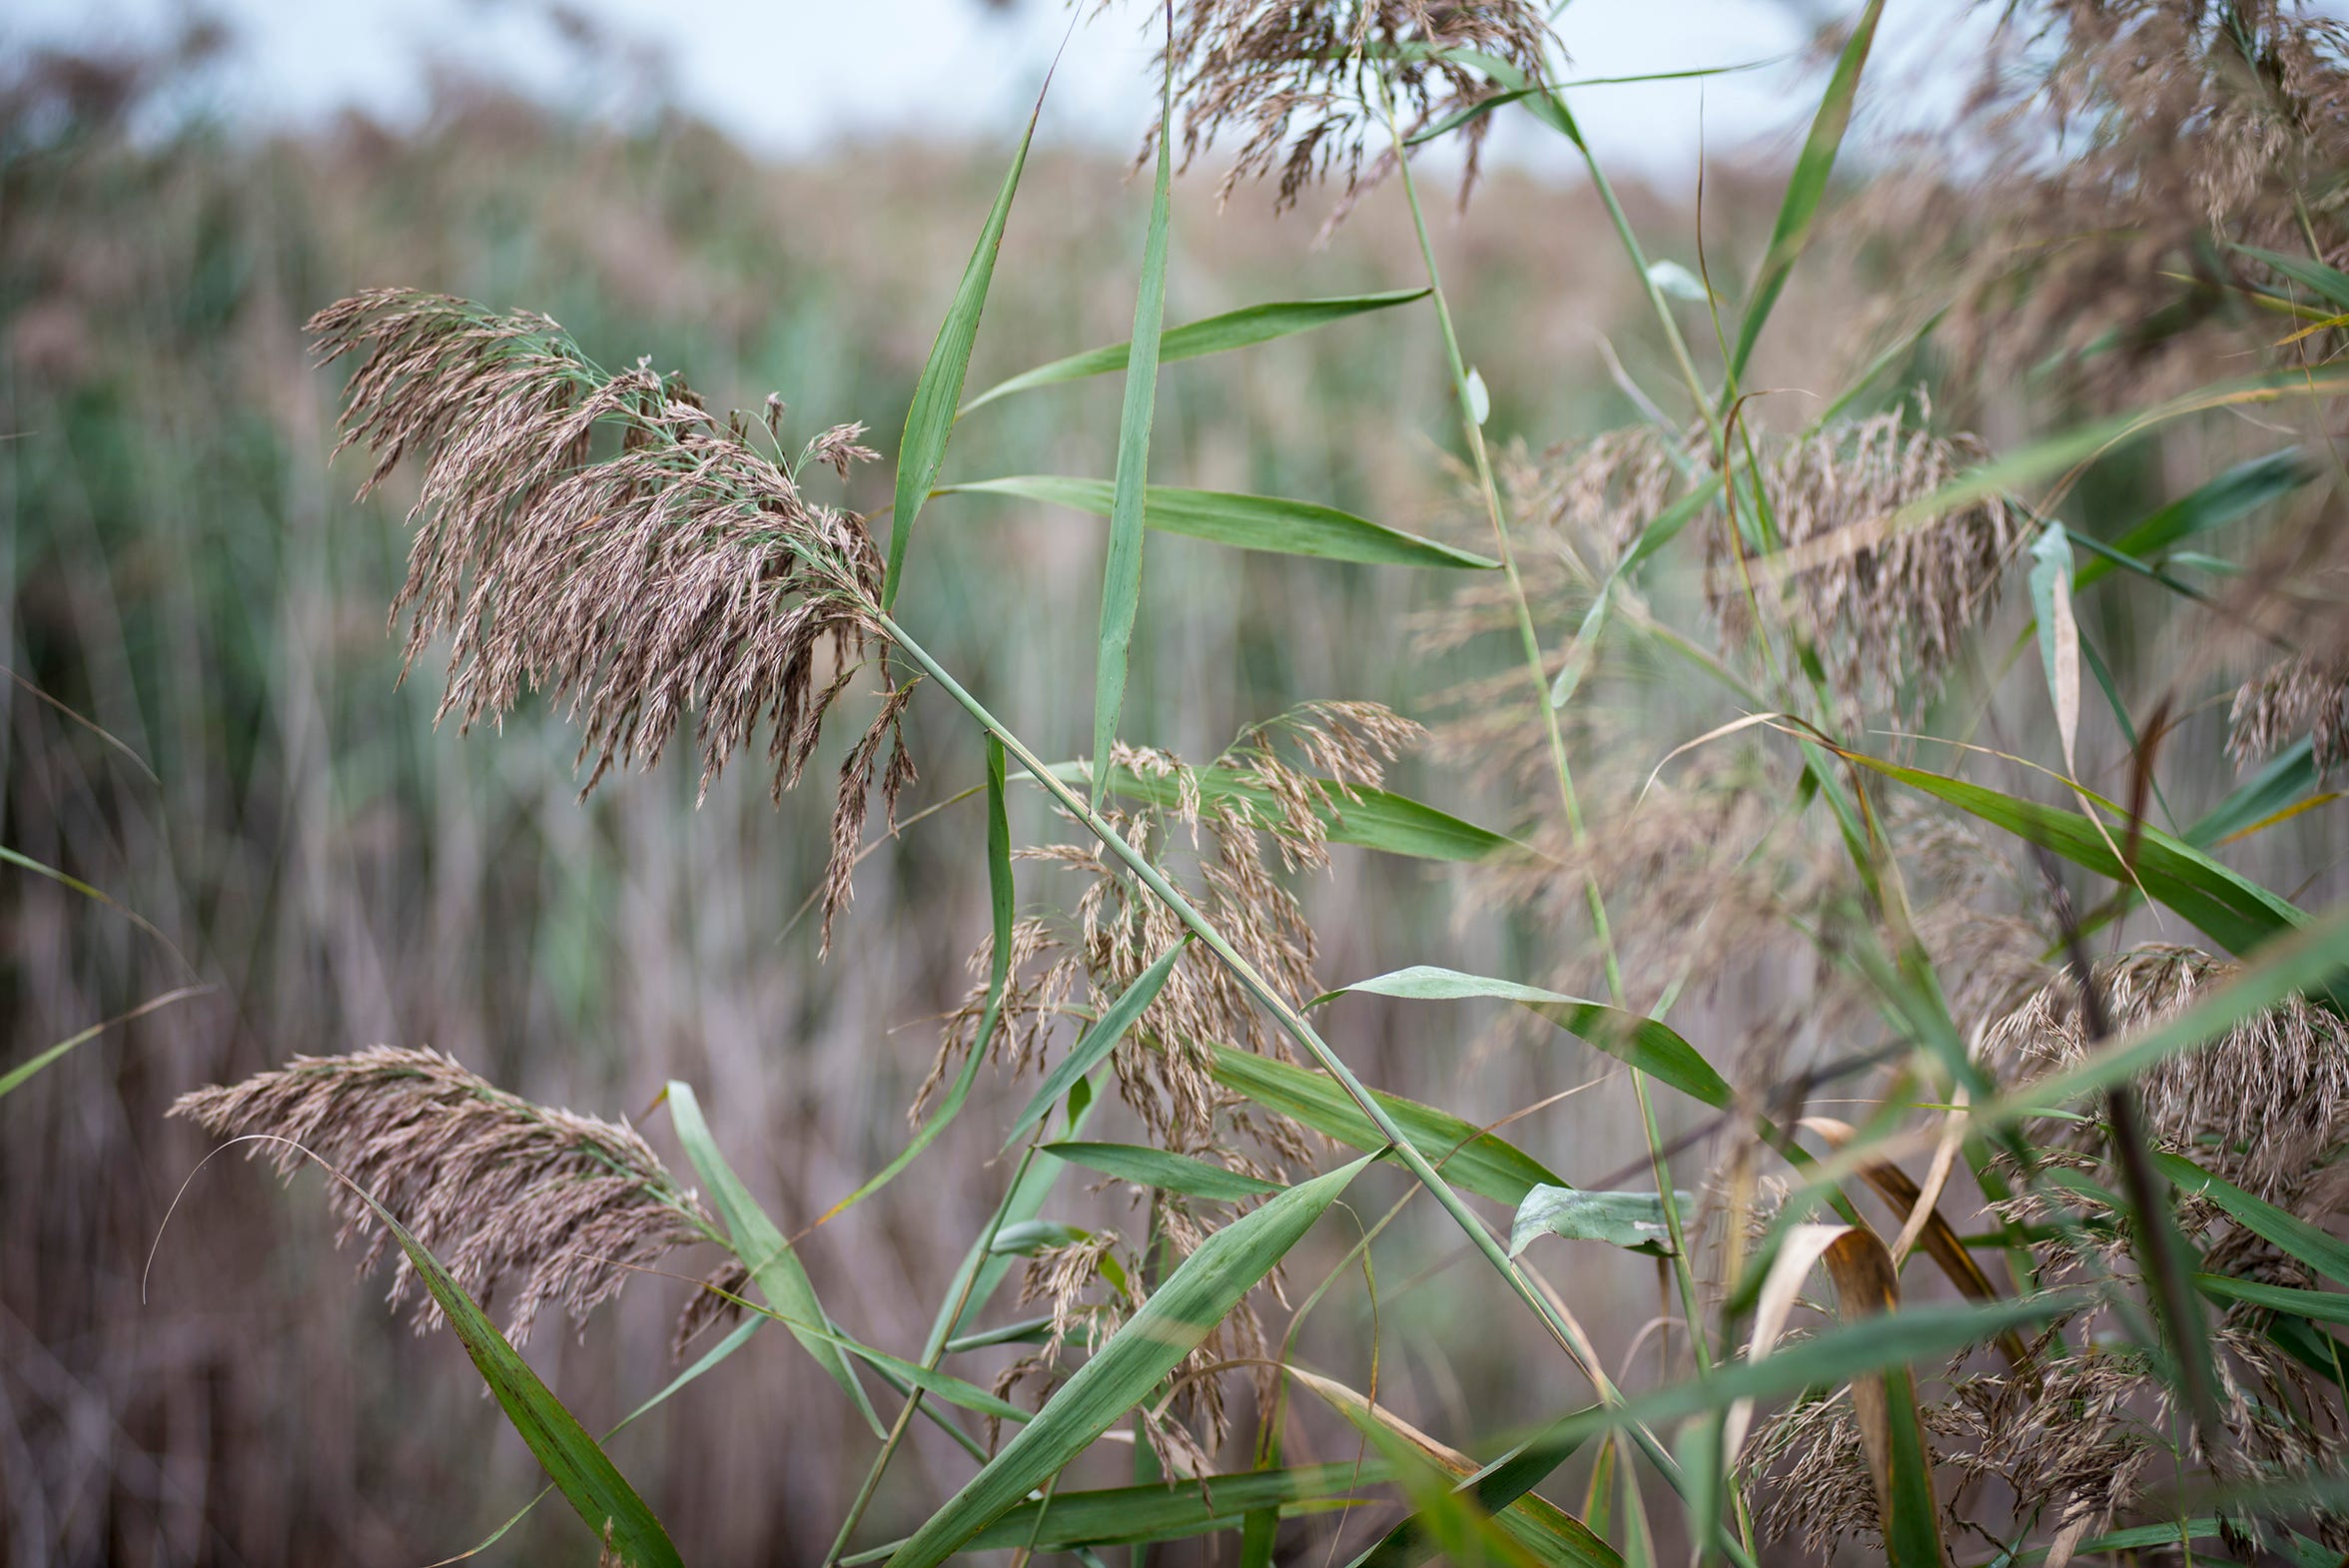 A proposal to use the herbicide glyphosate to at least initially knock down phragmites has residents concerned.